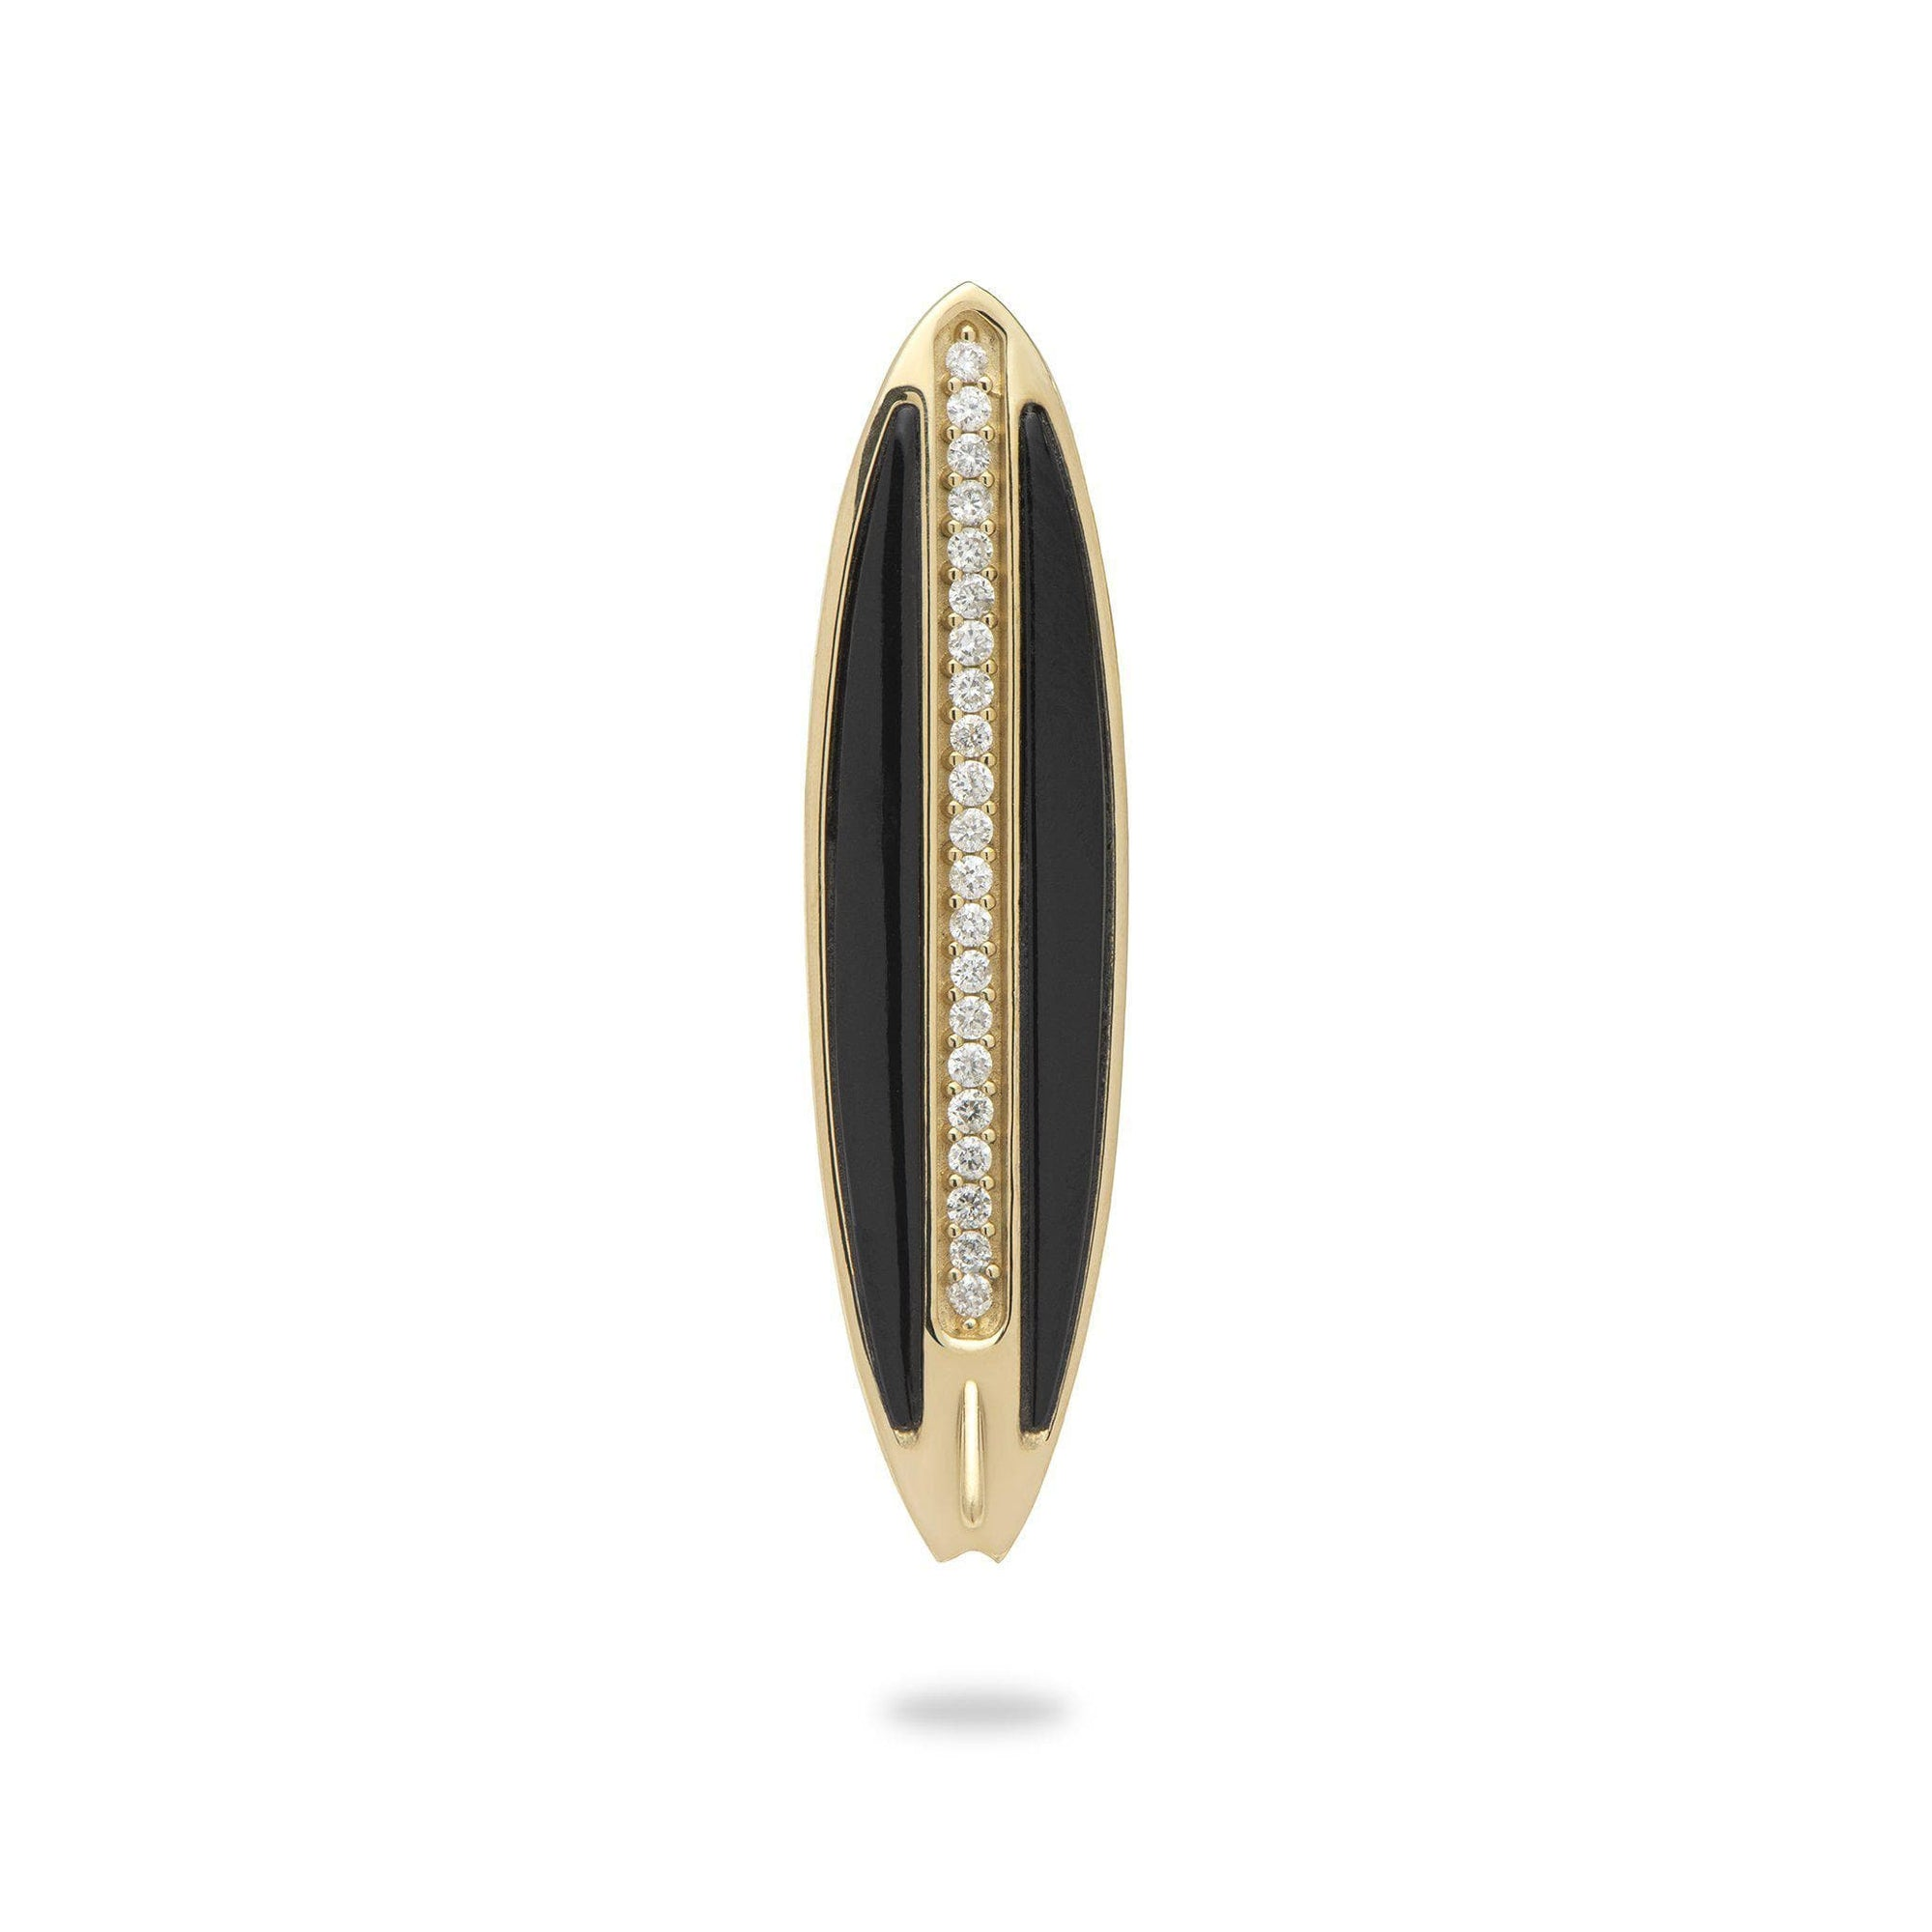 Sealife Surfboard Black Coral Pendant in Gold with Diamonds - 31mm-[SKU]